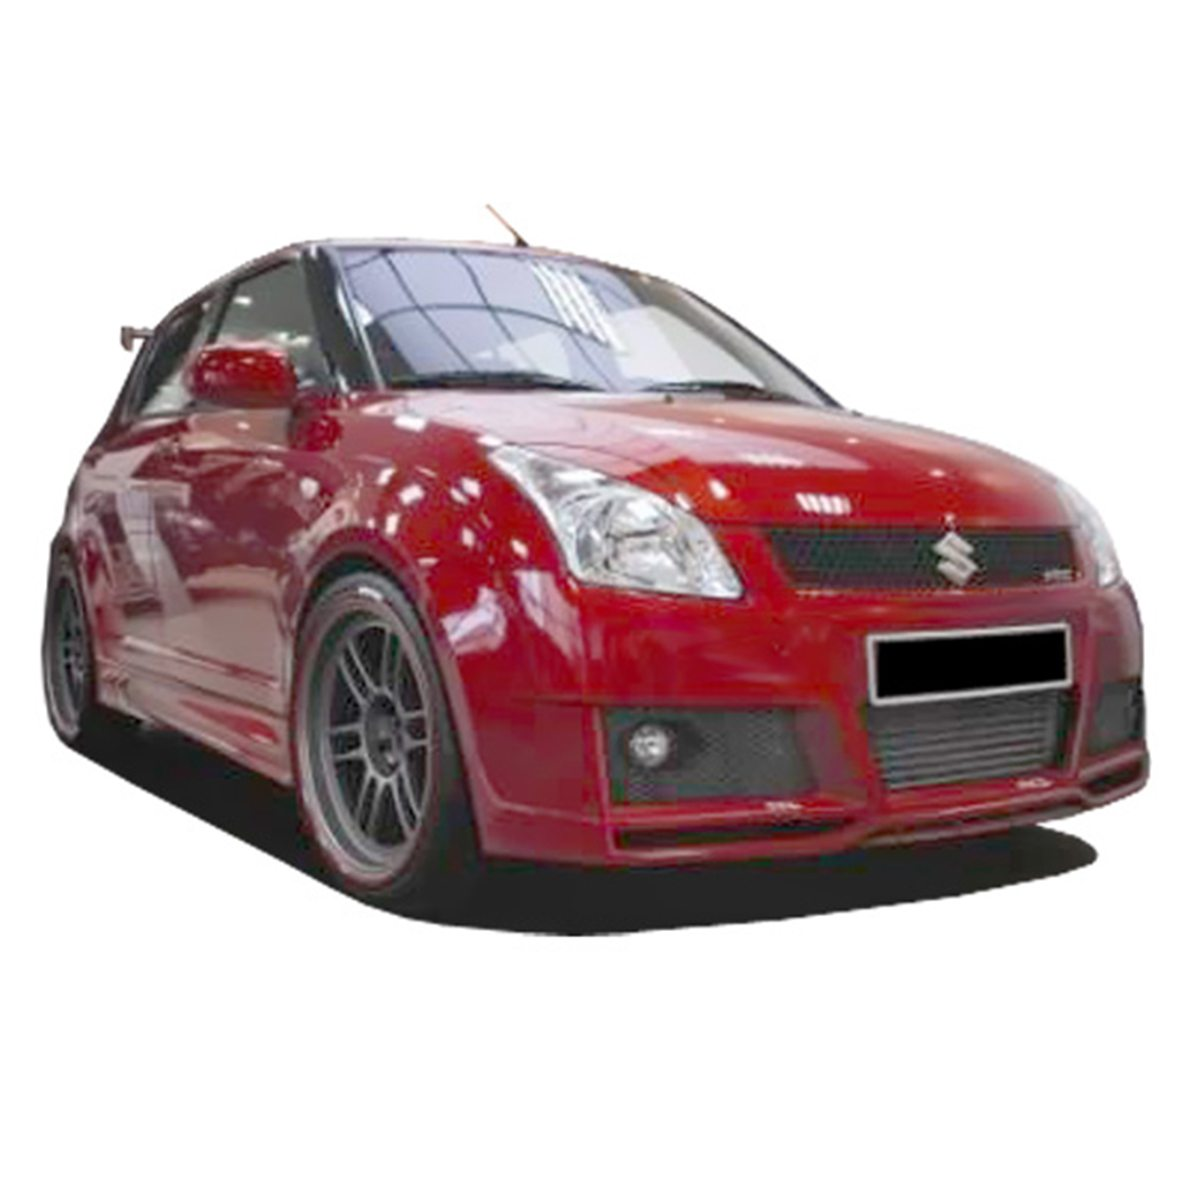 Suzuki-Swift-05-frt-PCS207